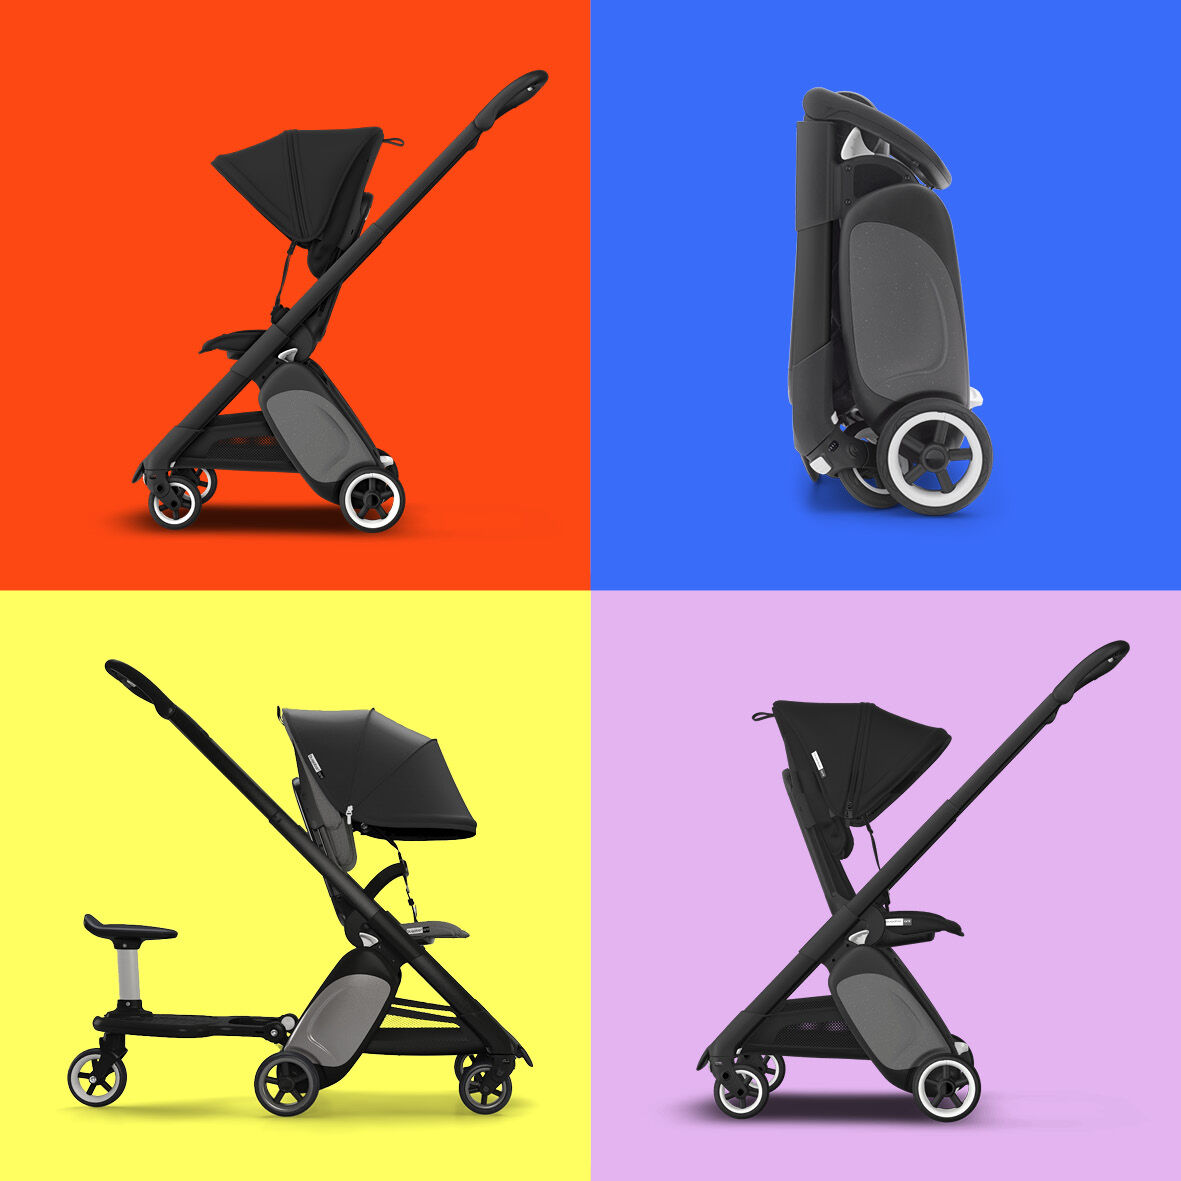 Versatile Bugaboo Ant ultra compact stroller